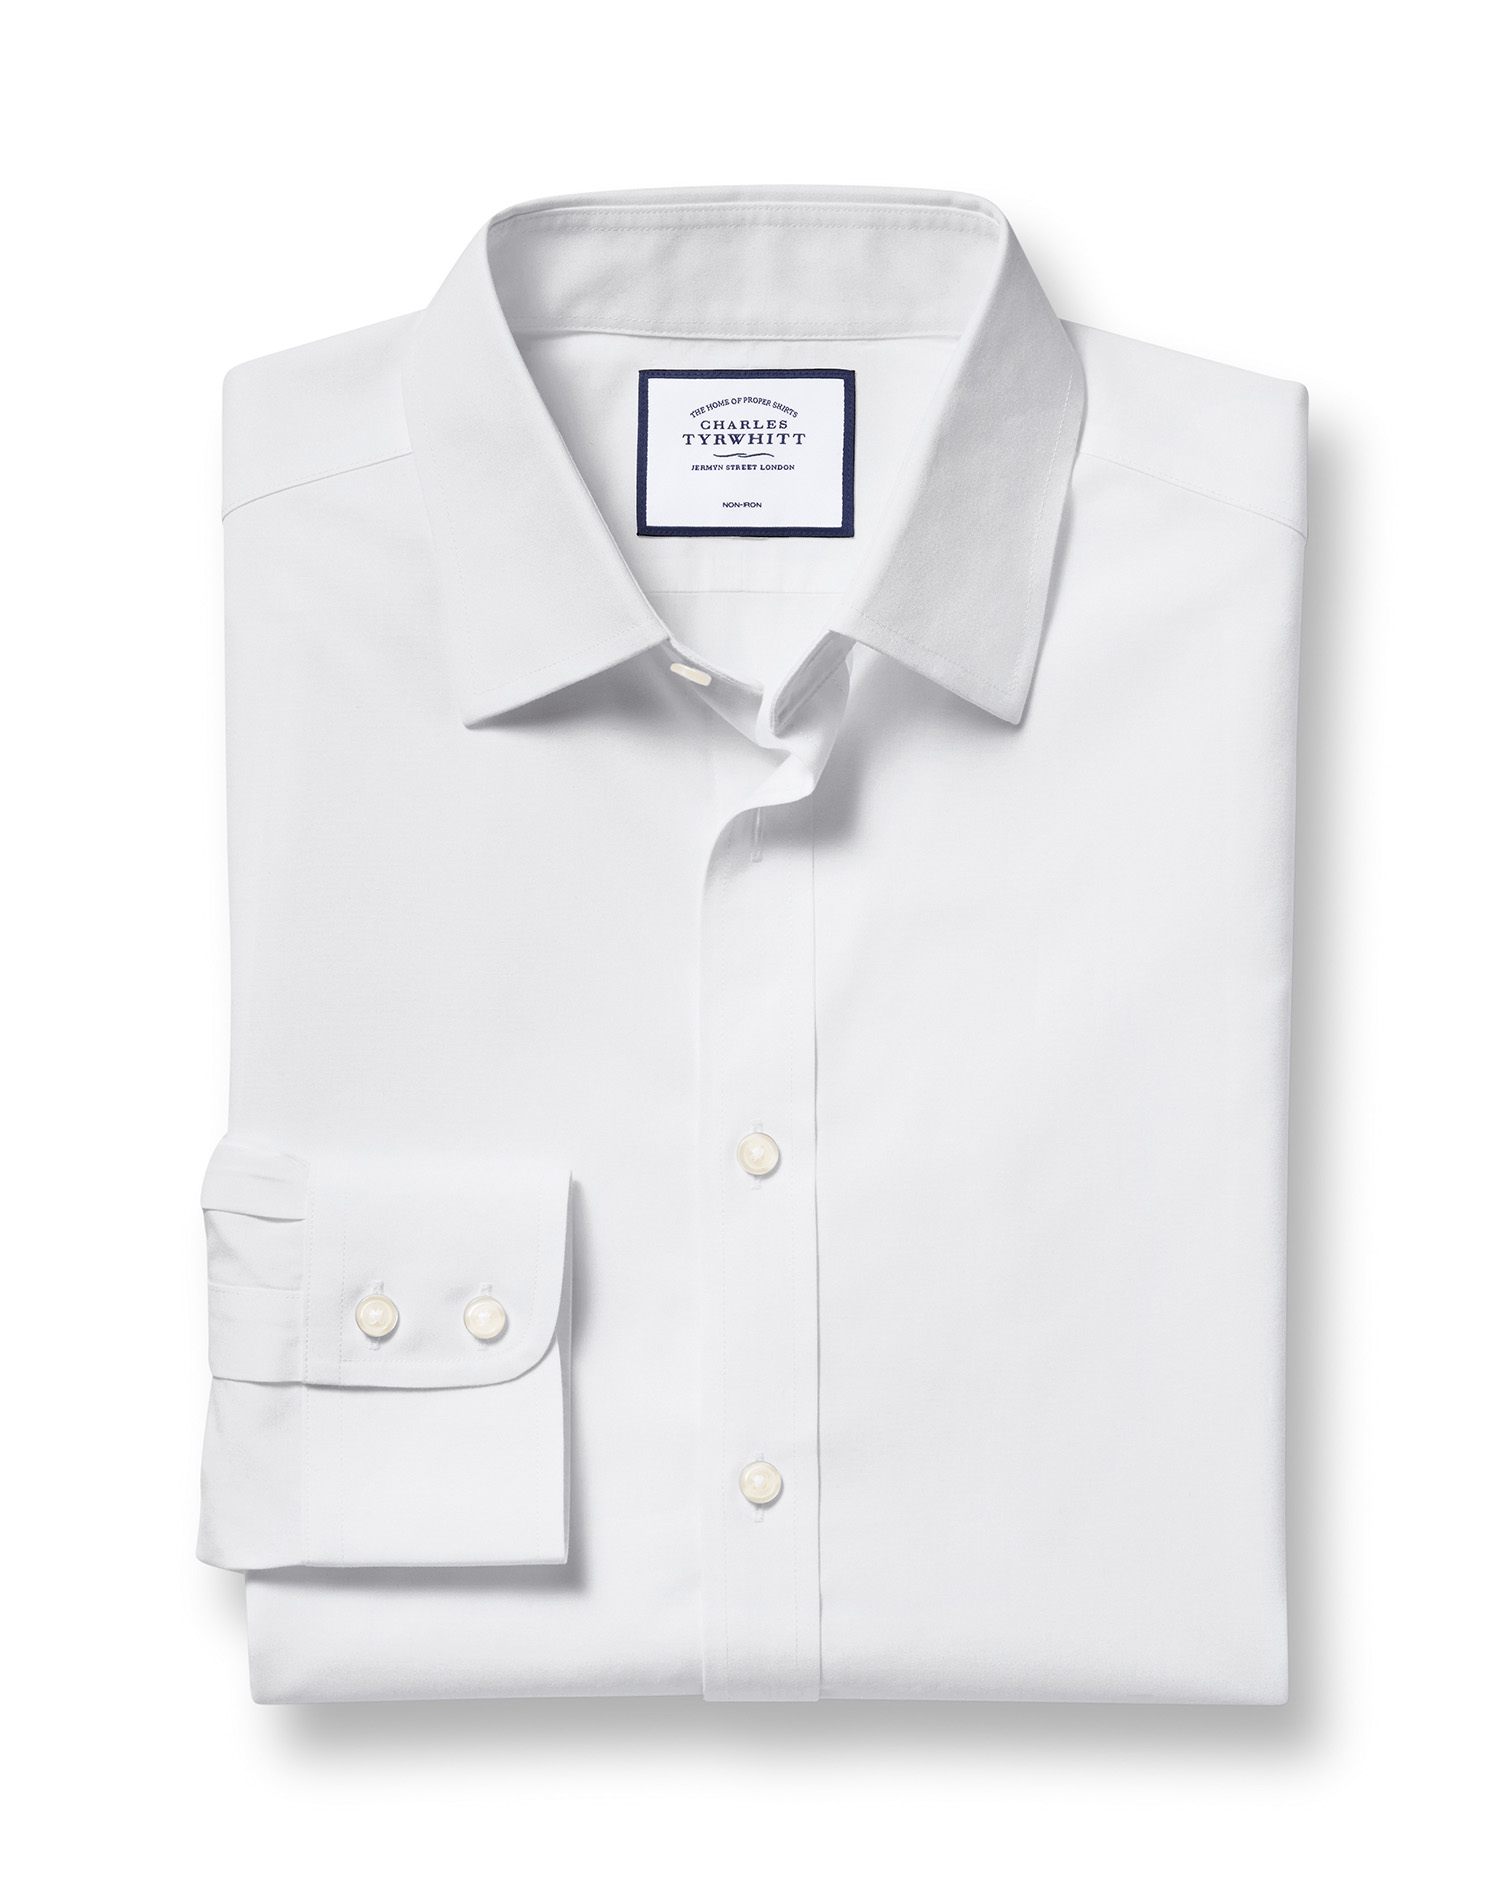 Slim Fit Non-Iron Poplin White Cotton Formal Shirt Double Cuff Size 15/35 by Charles Tyrwhitt